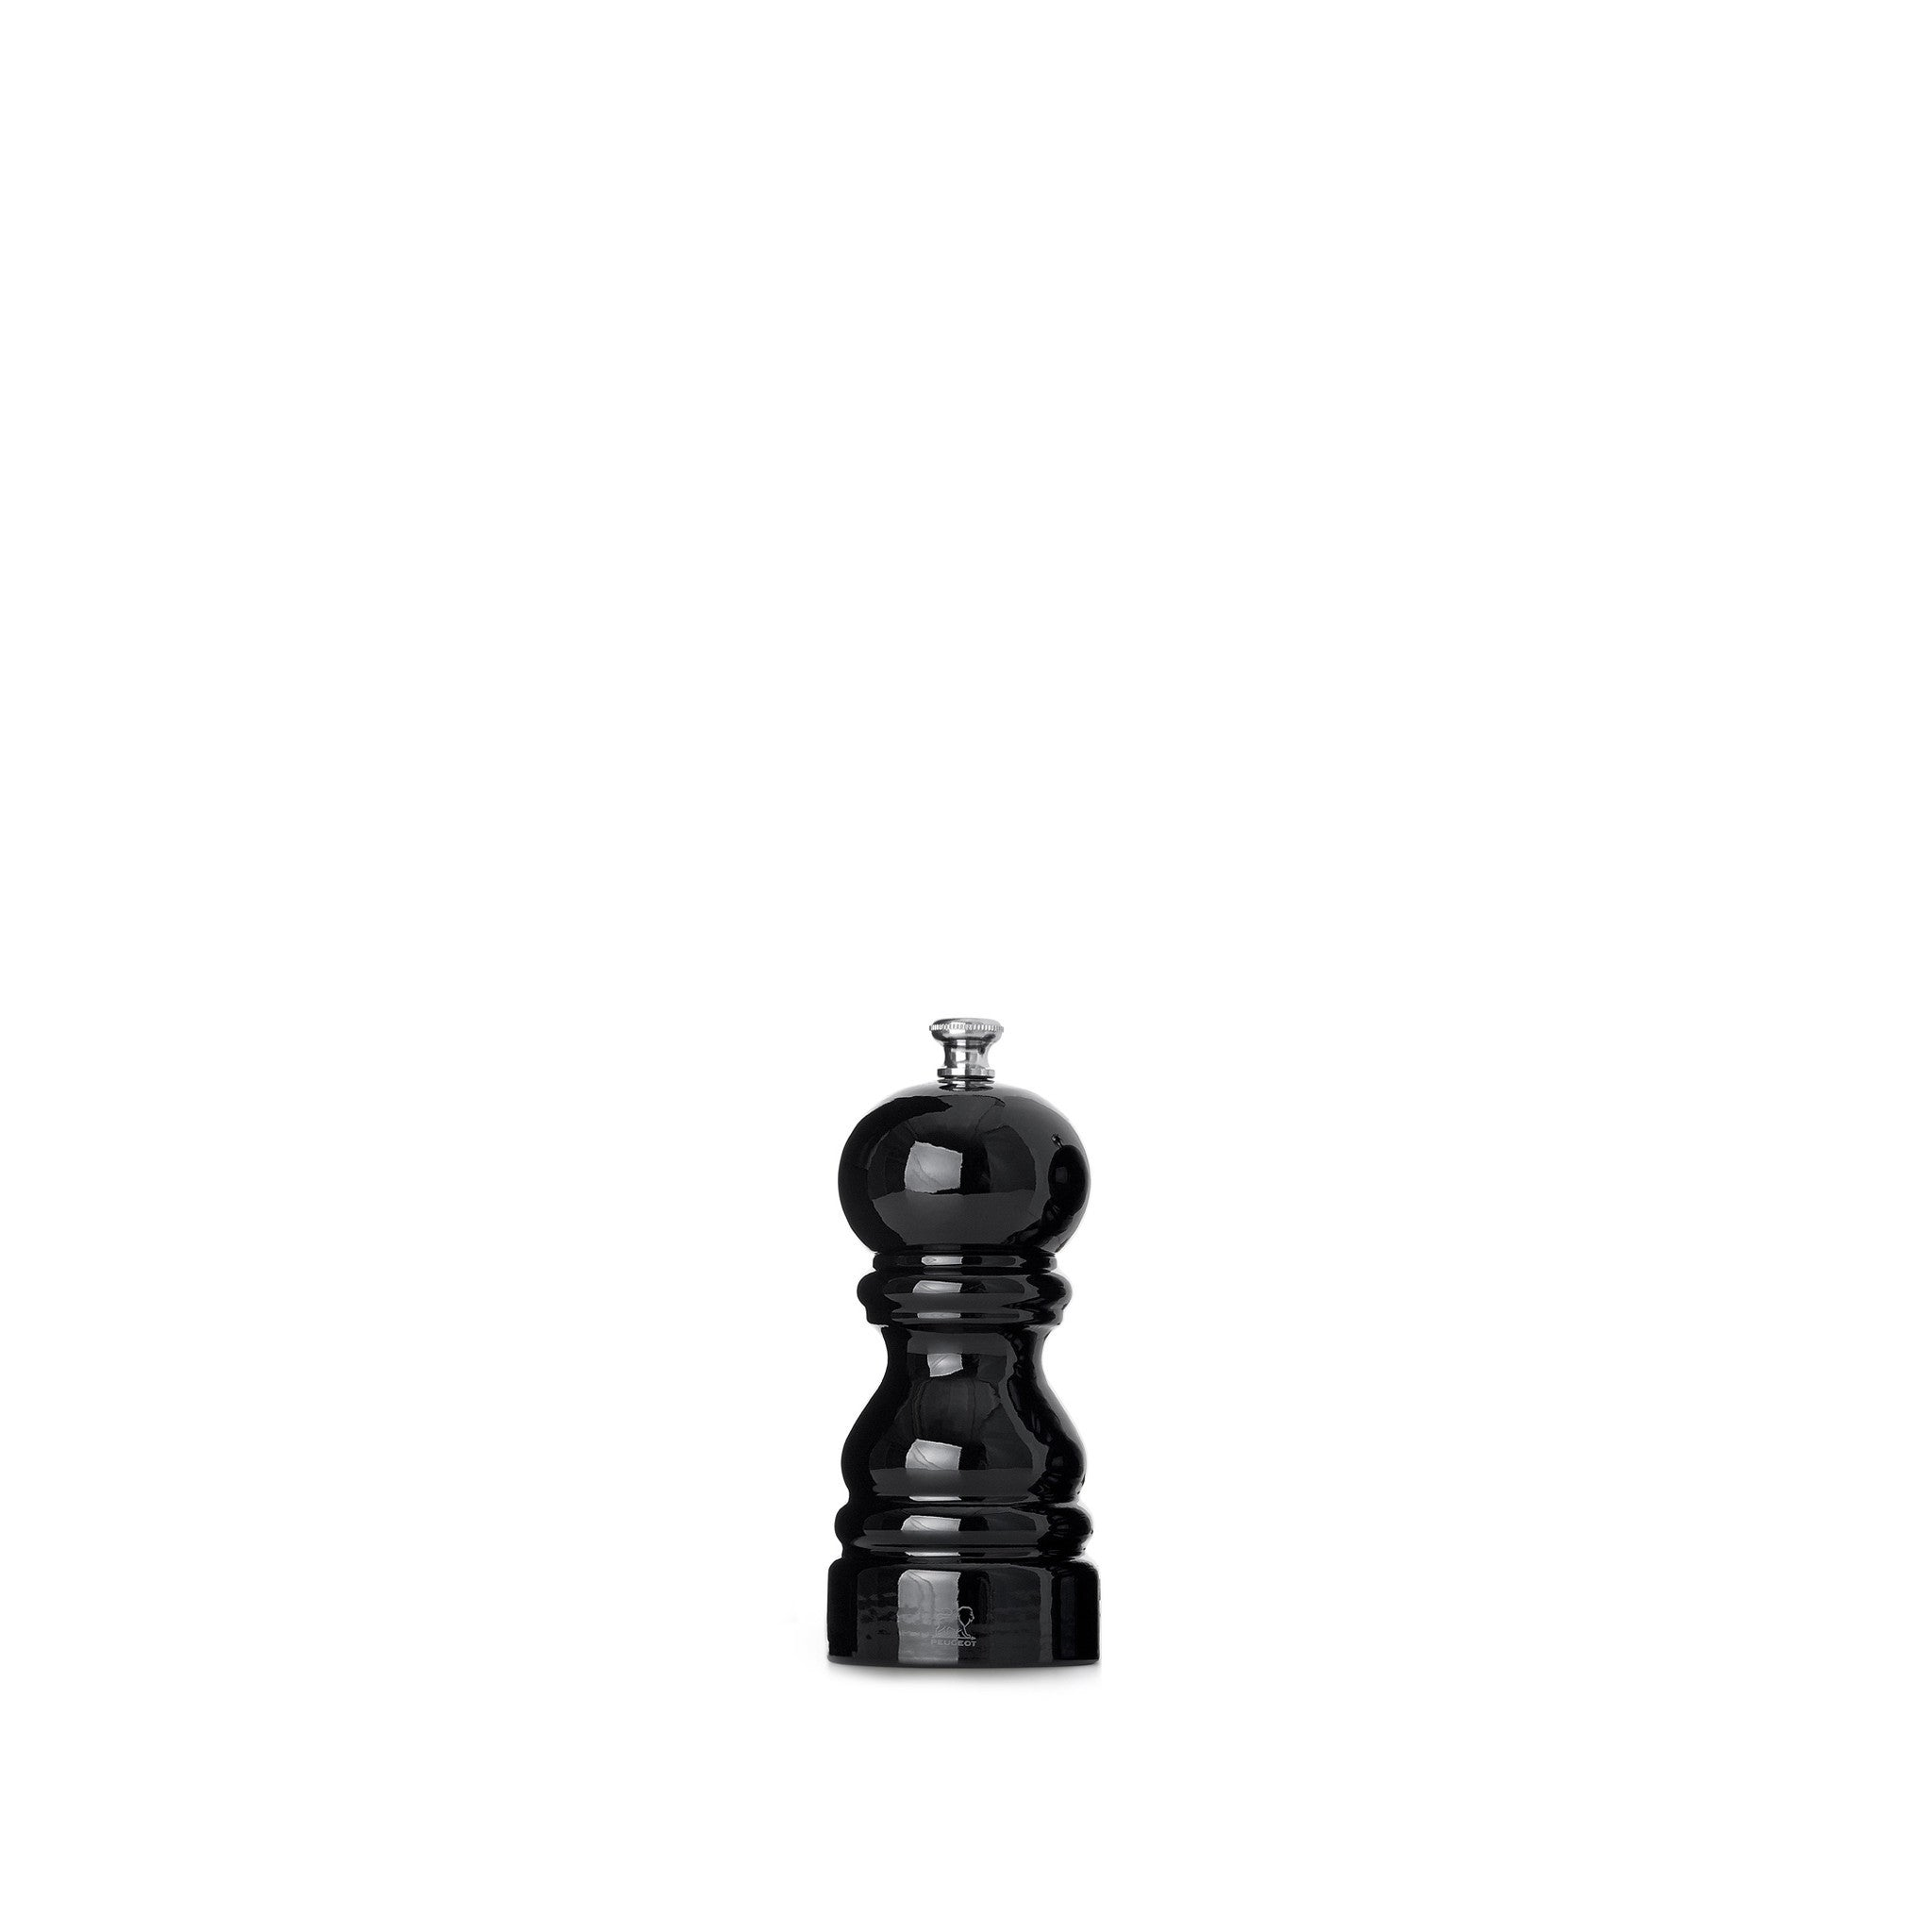 Peugeot Paris Black Lacquered Salt & Pepper Mill Set, 12cm